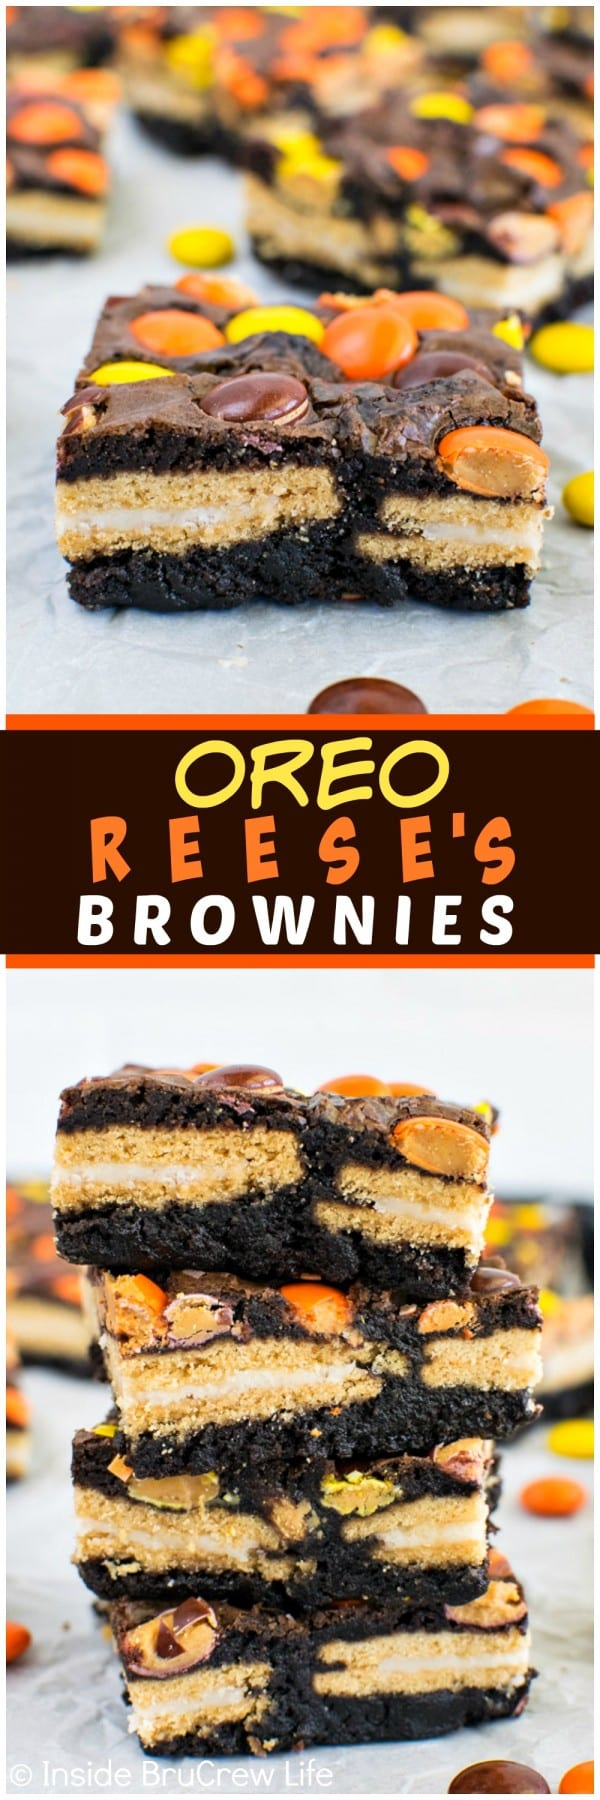 Oreo Reese's Brownie Bars - these easy brownies are loaded with cookies and candies! Perfect dessert recipe!